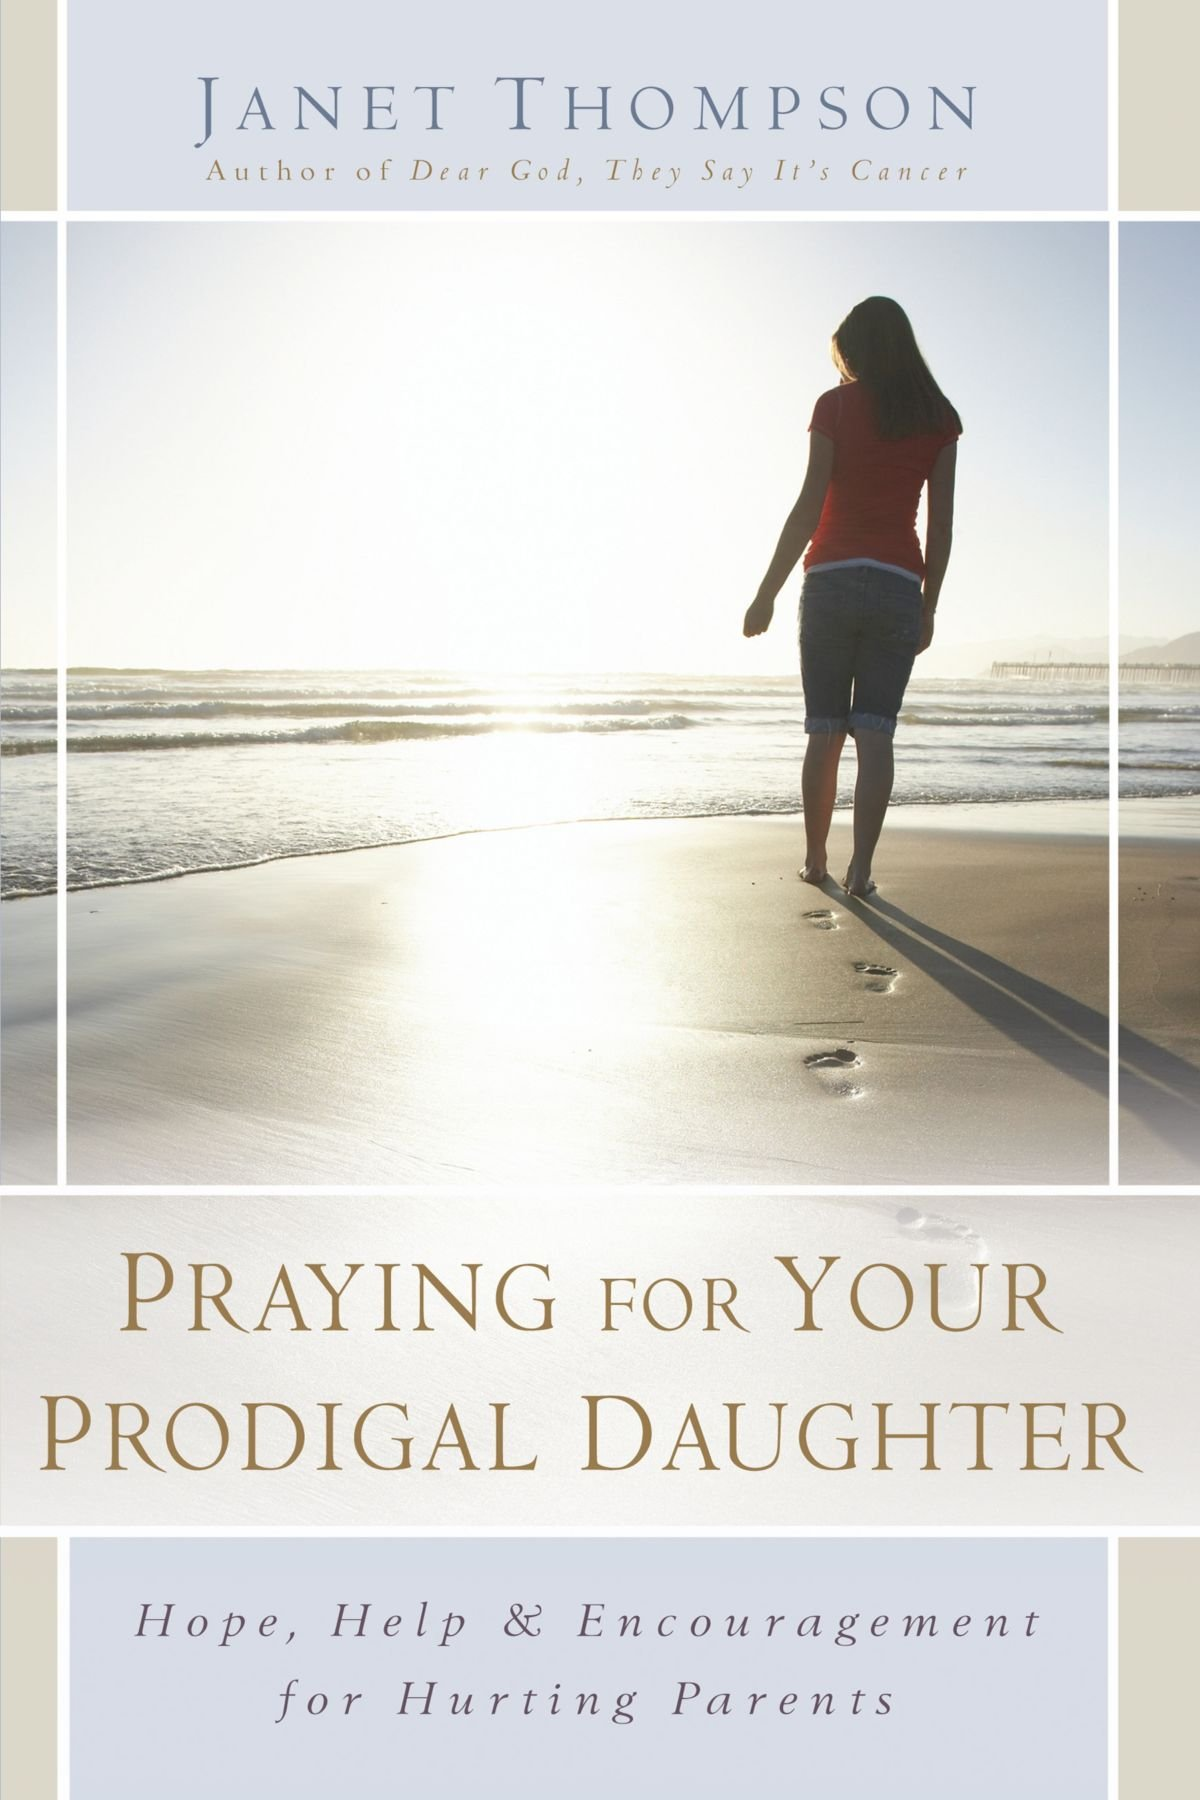 Praying for Your Prodigal Daughter: Hope, Help & Encouragement for Hurting Parents PDF